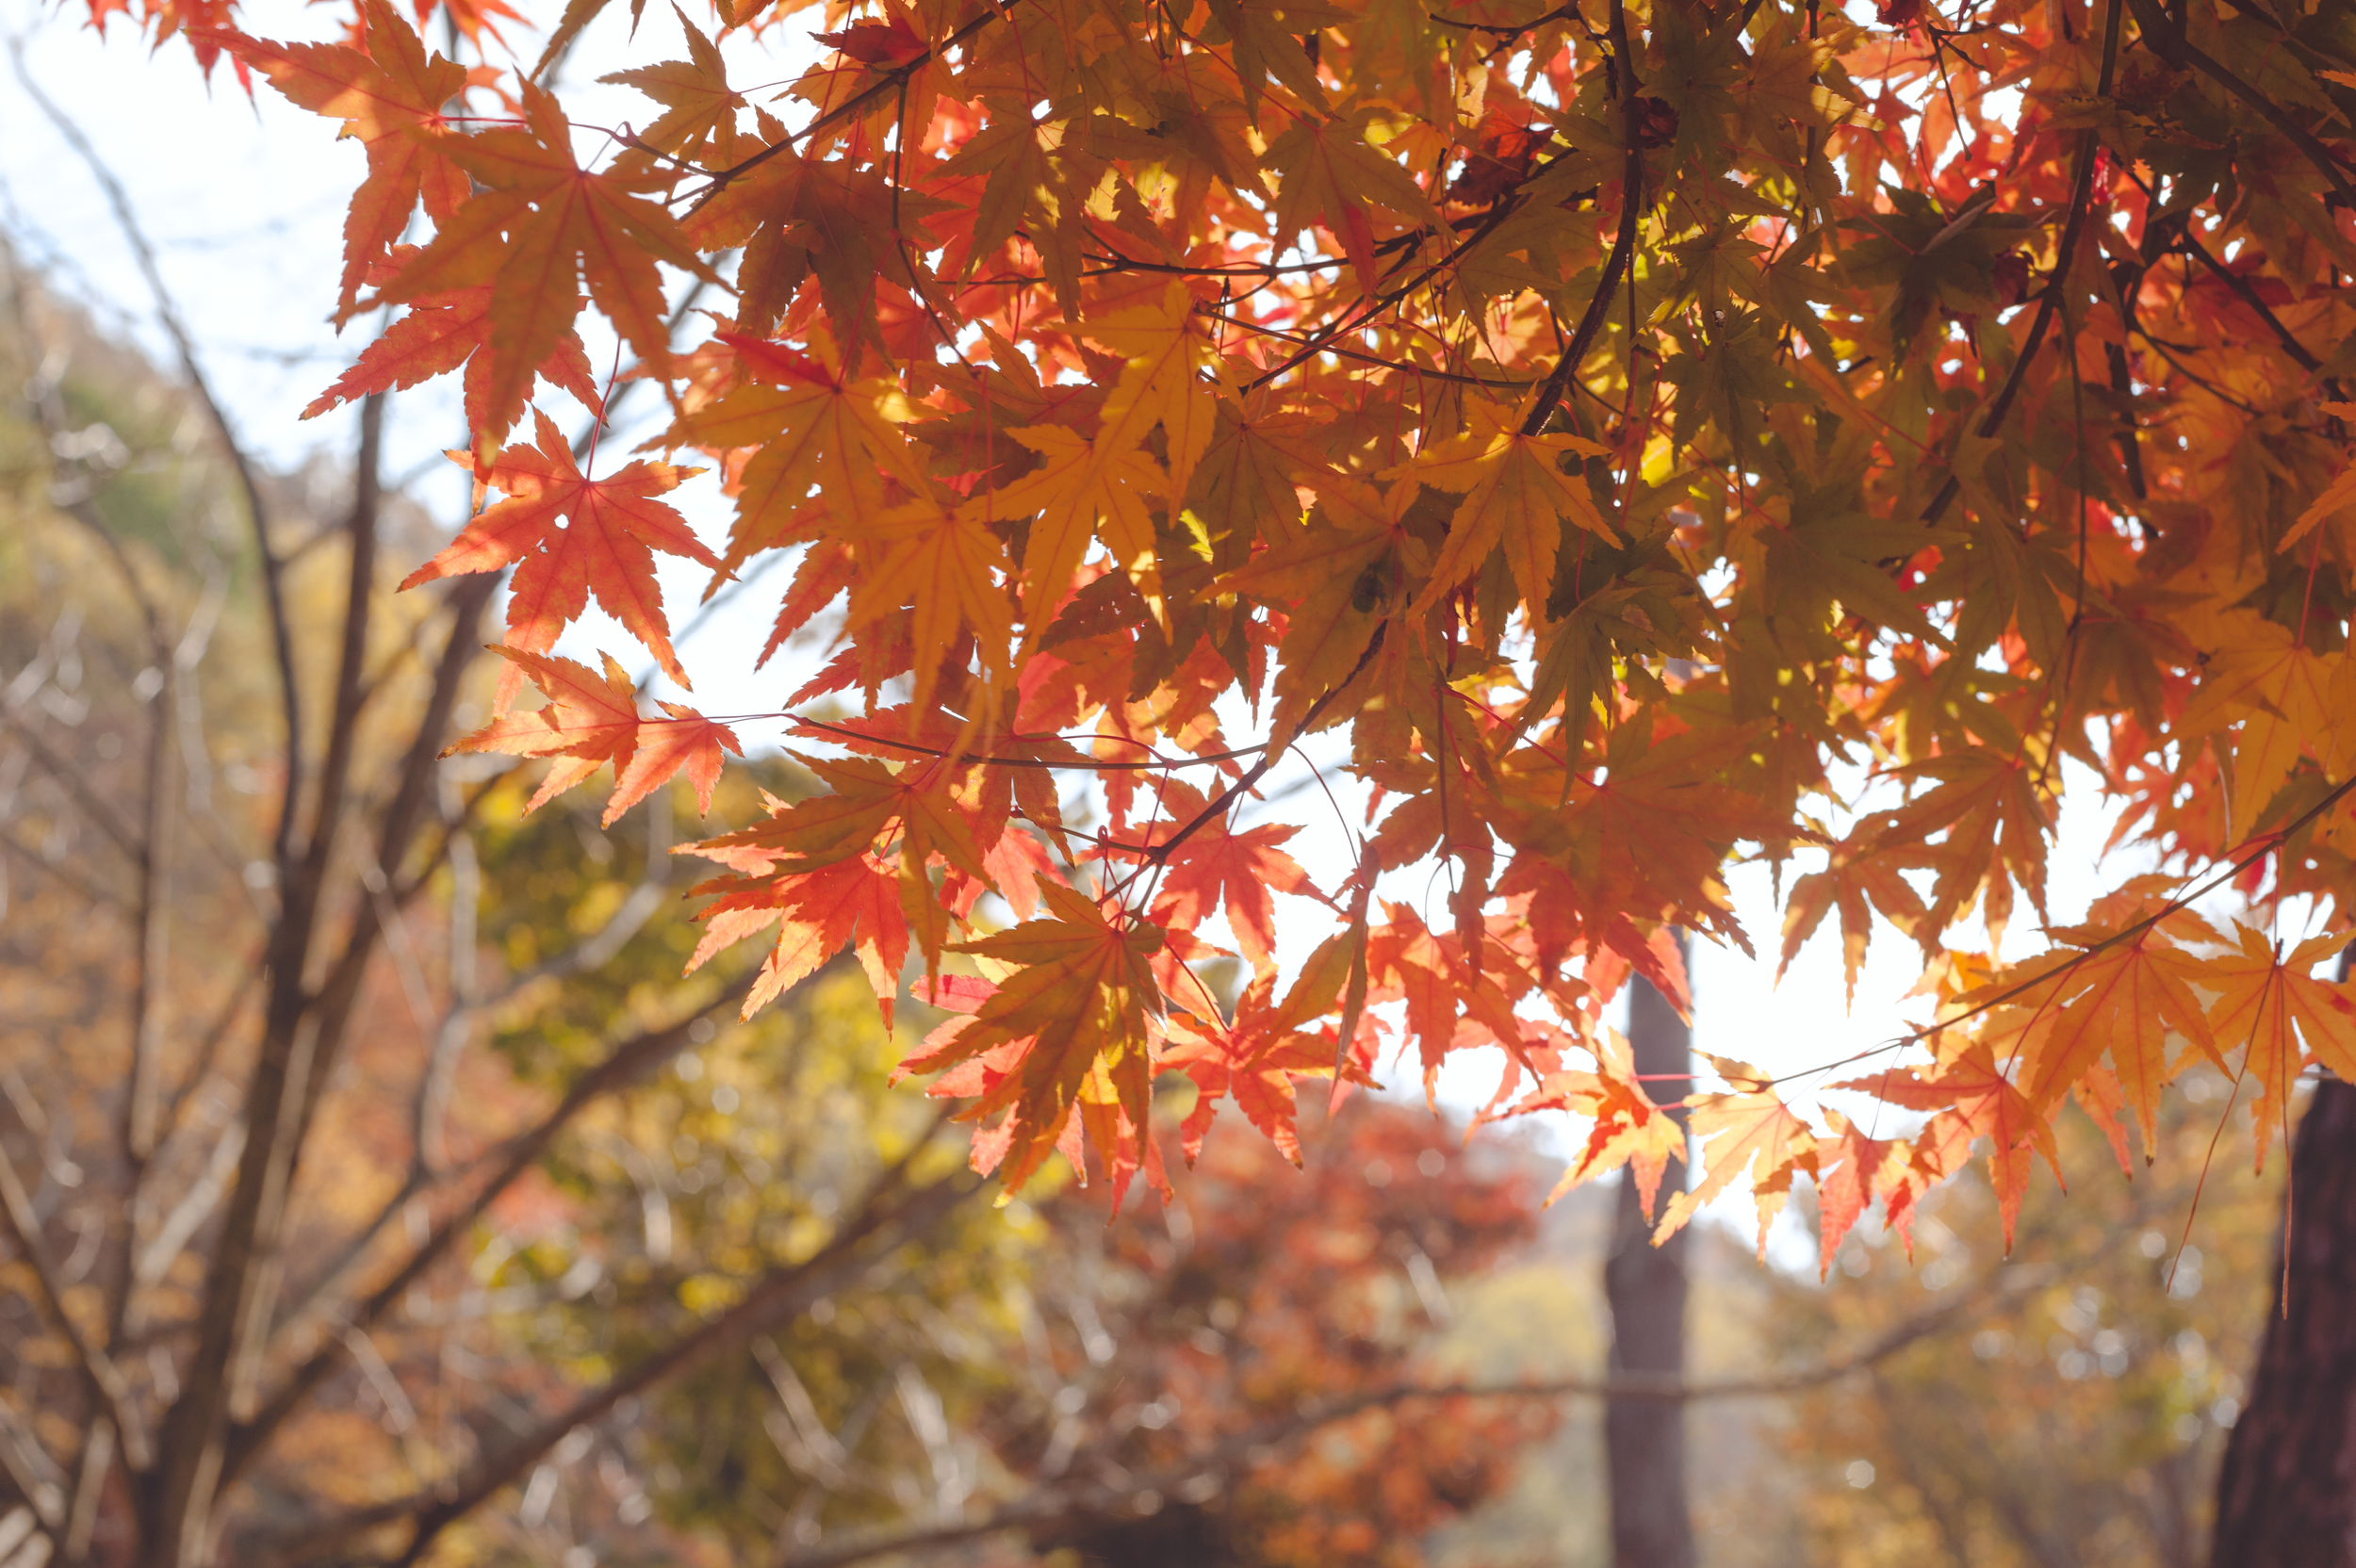 AutumnInKoreaSoenunsaParkFallLeaves (8 of 37).jpg